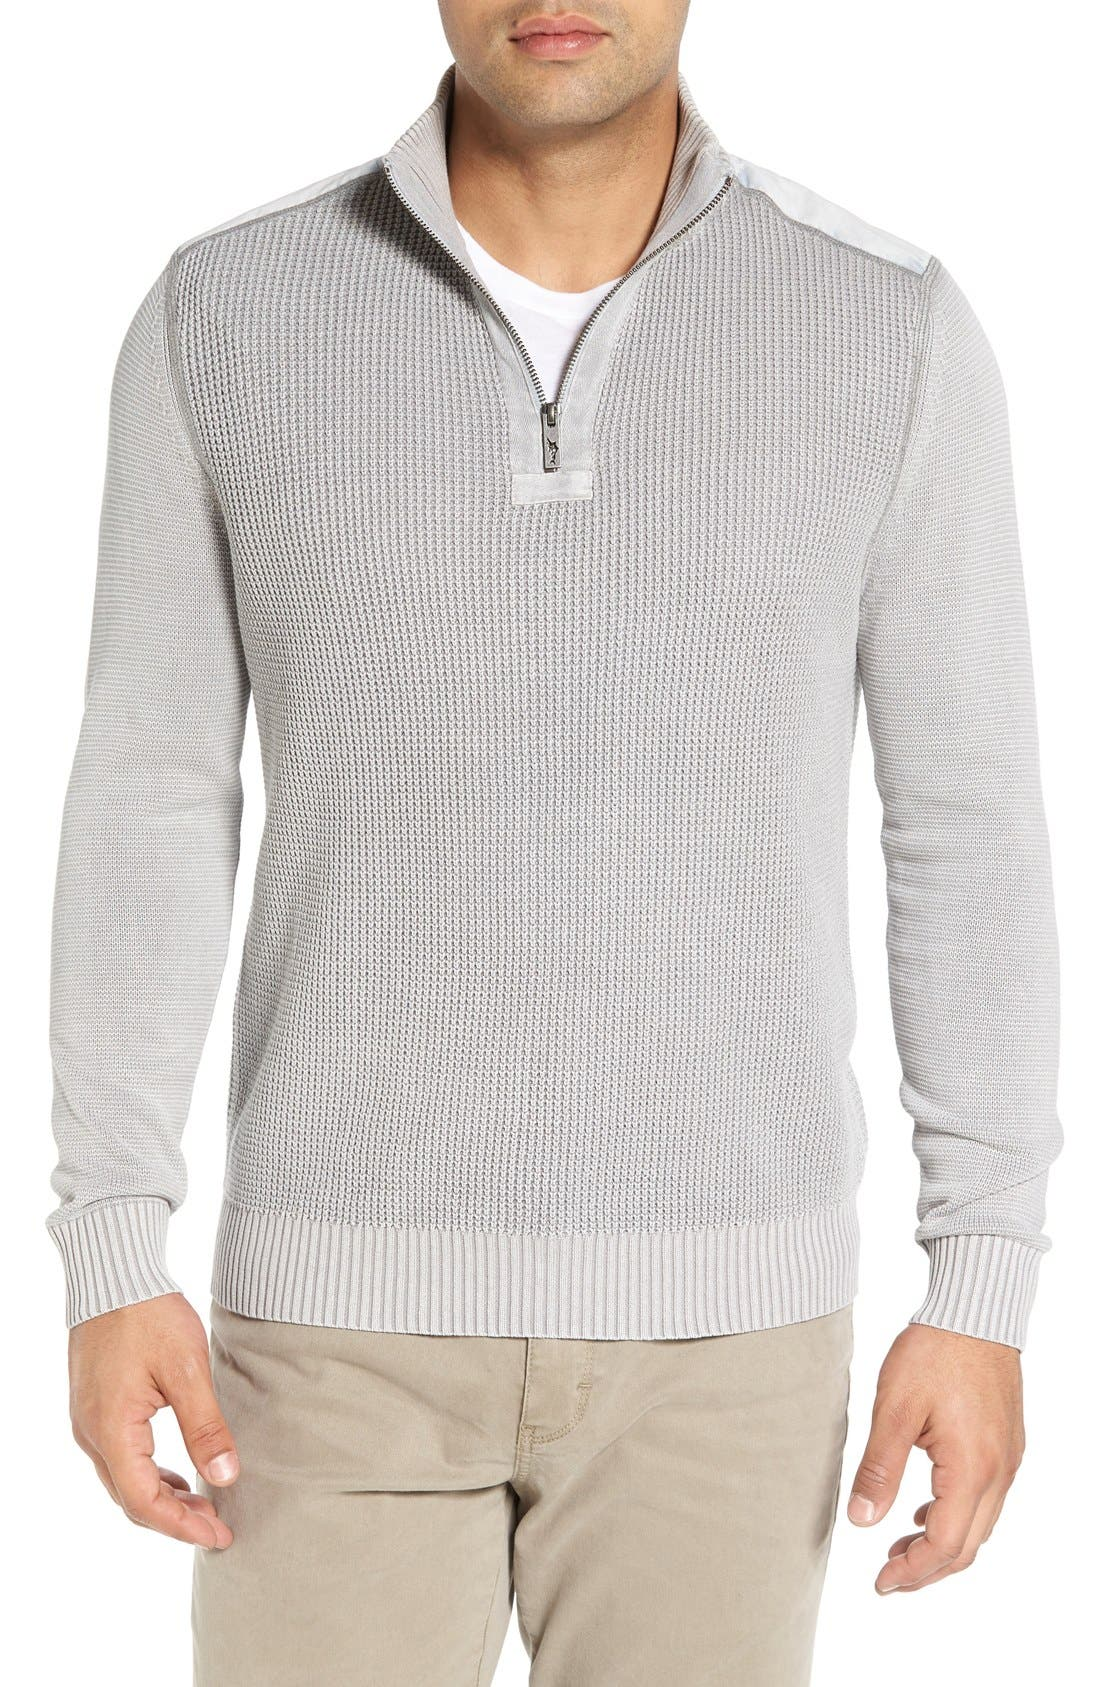 Alternate Image 1 Selected - Tommy Bahama 'Coastal Shores' Quarter Zip Sweater